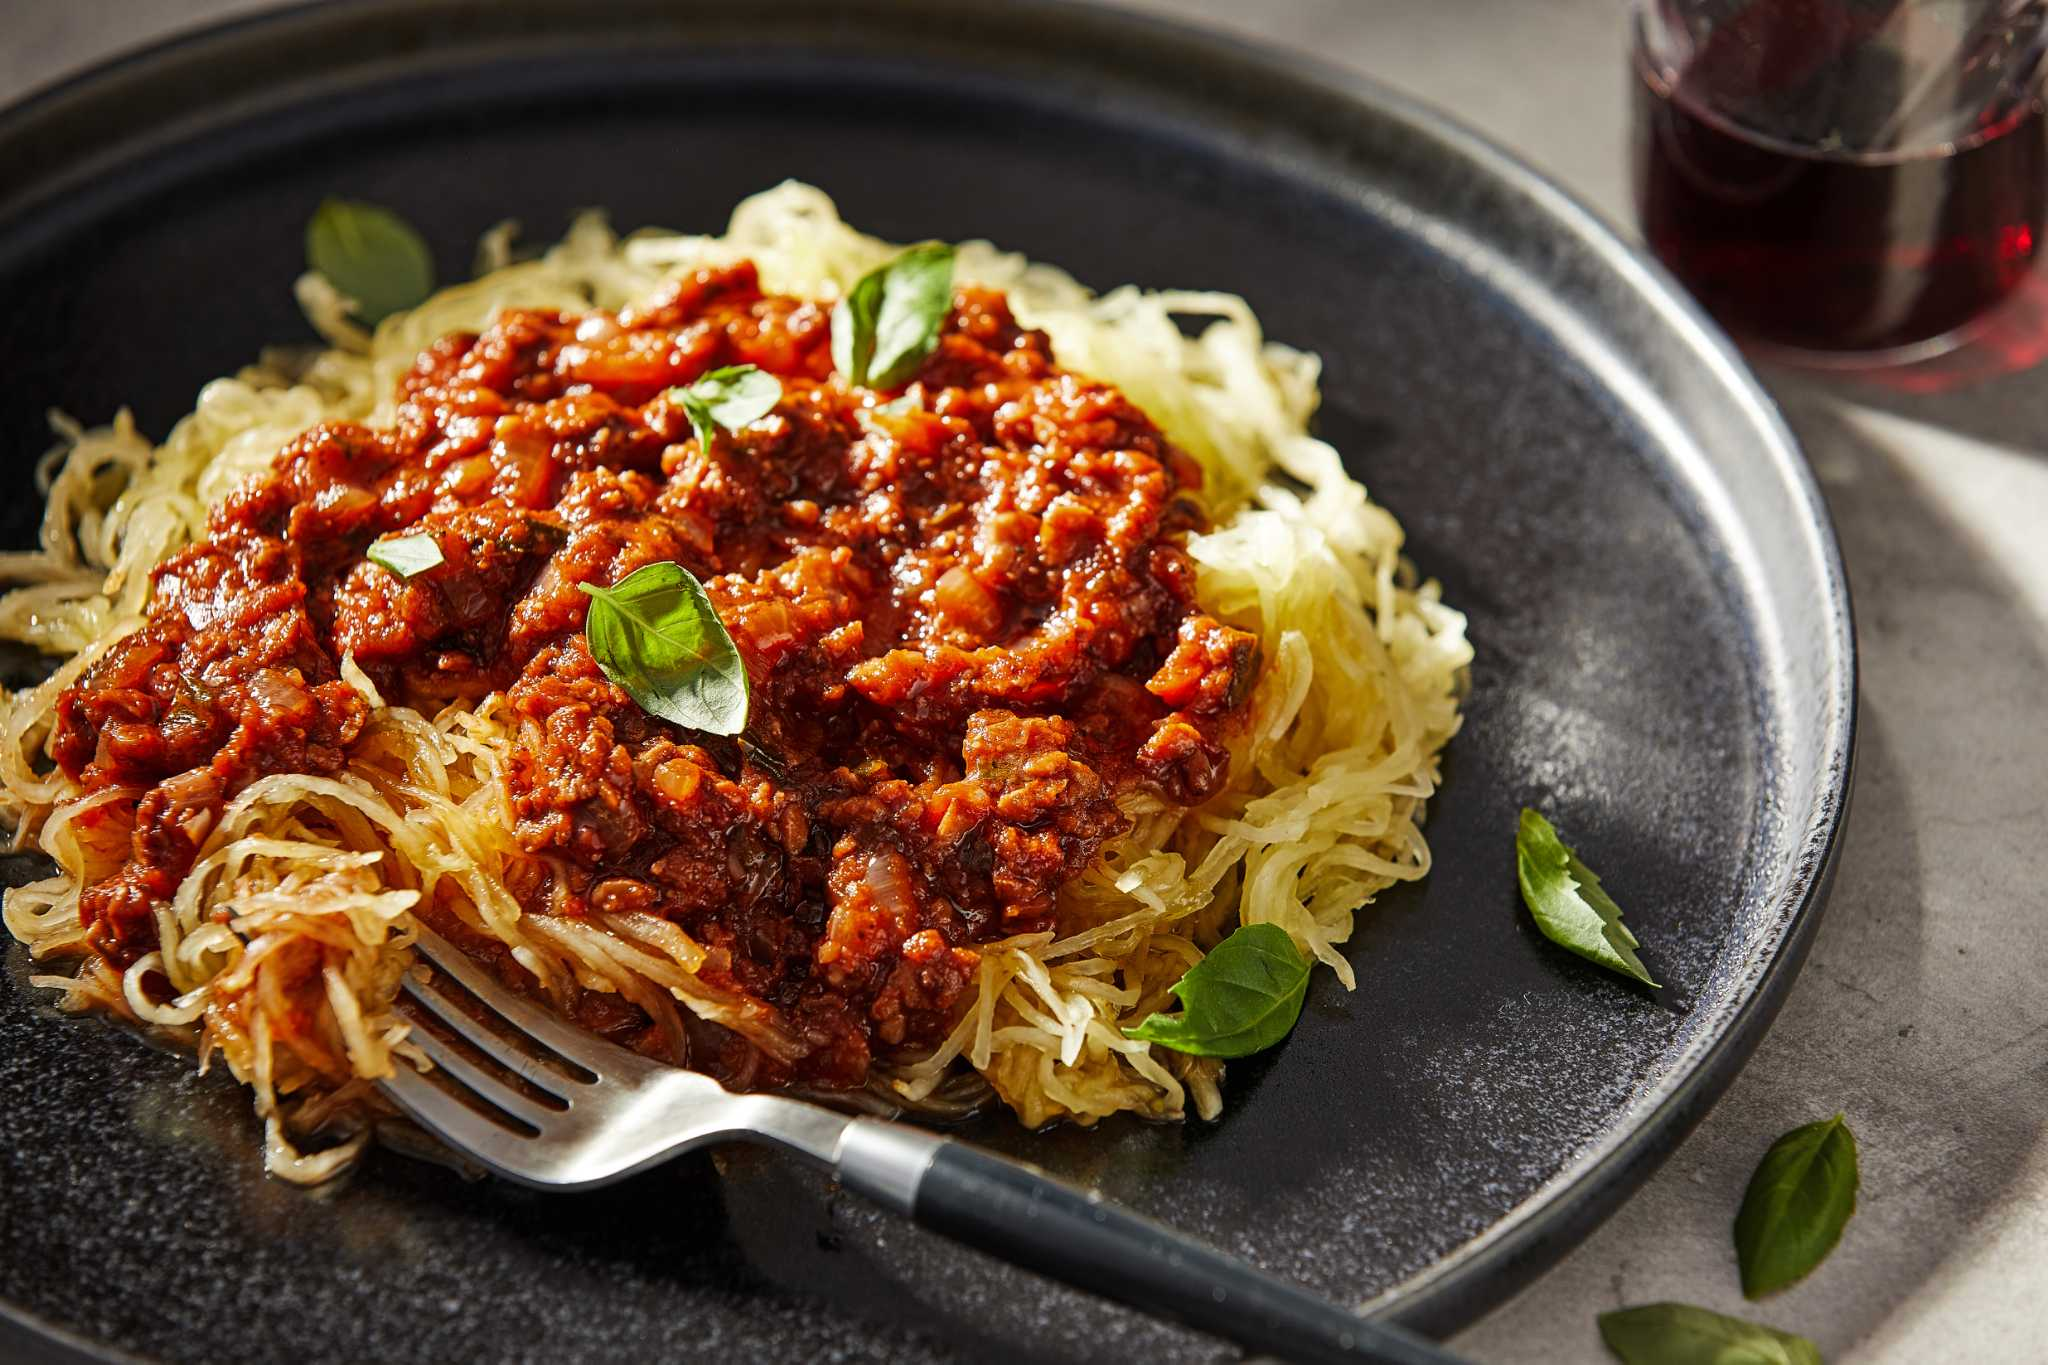 This vegan Bolognese is full of familiar, comforting flavors